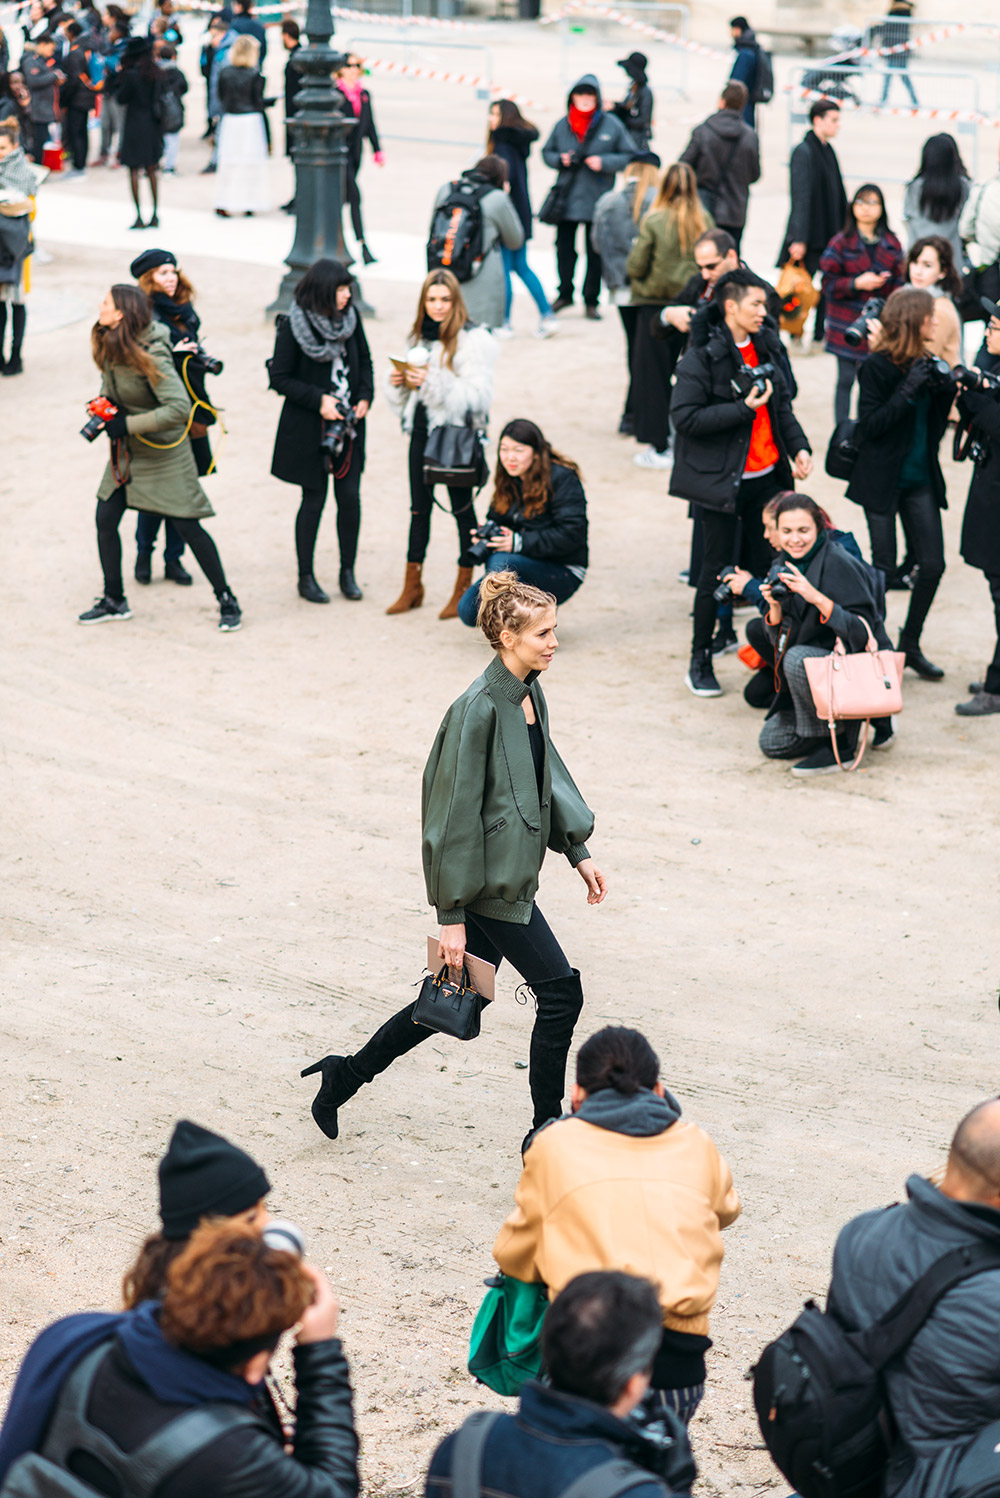 Paris Fashion Week Streetstyle by The Petticoat -Lena Perminova Before Valentino Show Paris PFW Green Bomber Jacket